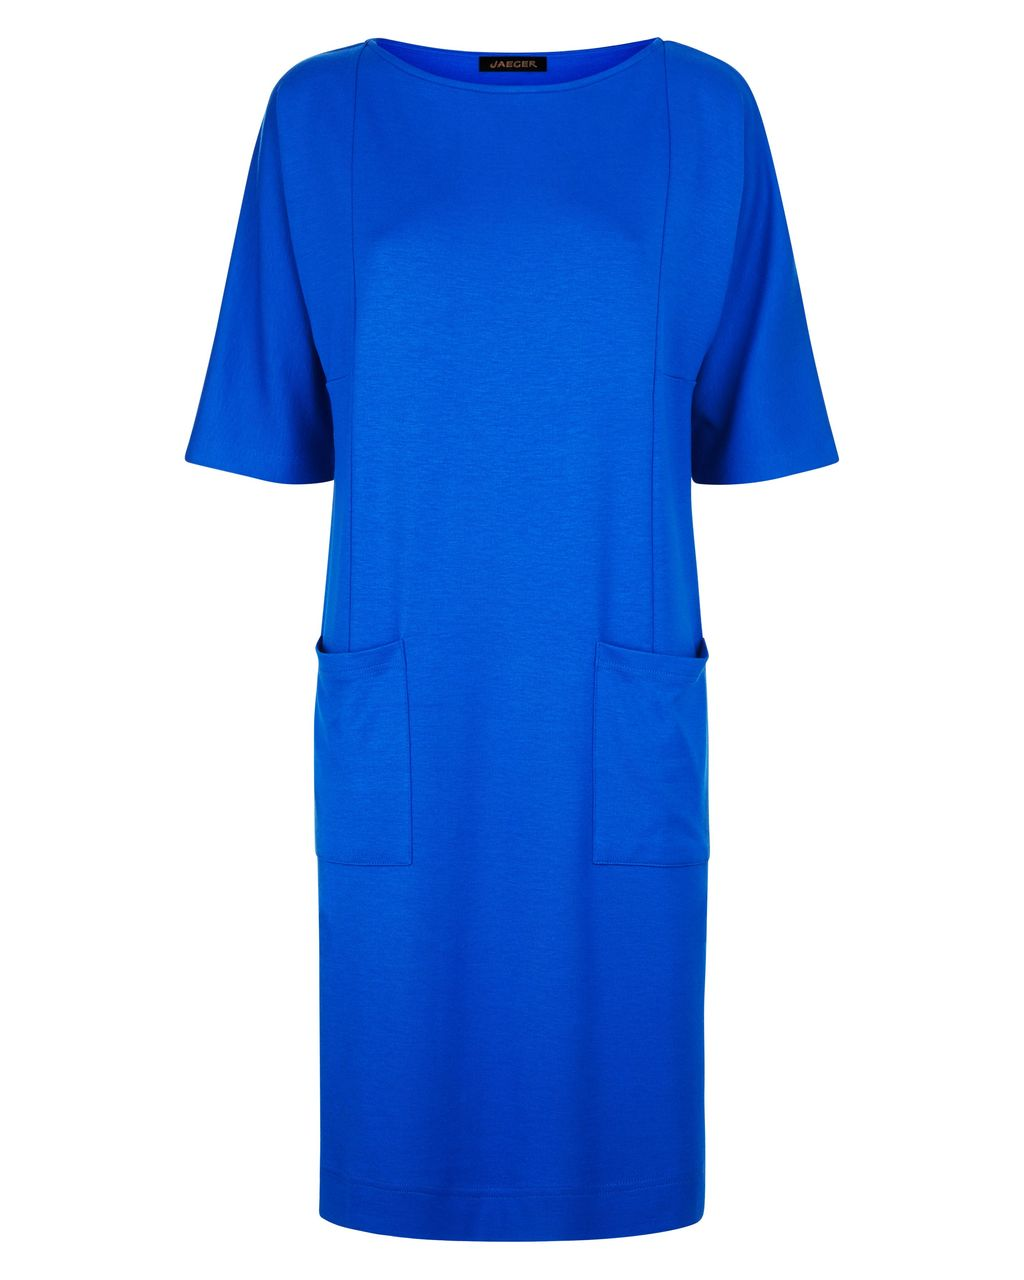 Jersey Seam Detail Dress, Blue - style: shift; pattern: plain; predominant colour: royal blue; occasions: evening; length: on the knee; fit: body skimming; fibres: viscose/rayon - stretch; neckline: crew; sleeve length: short sleeve; sleeve style: standard; pattern type: fabric; texture group: jersey - stretchy/drapey; season: s/s 2016; wardrobe: event